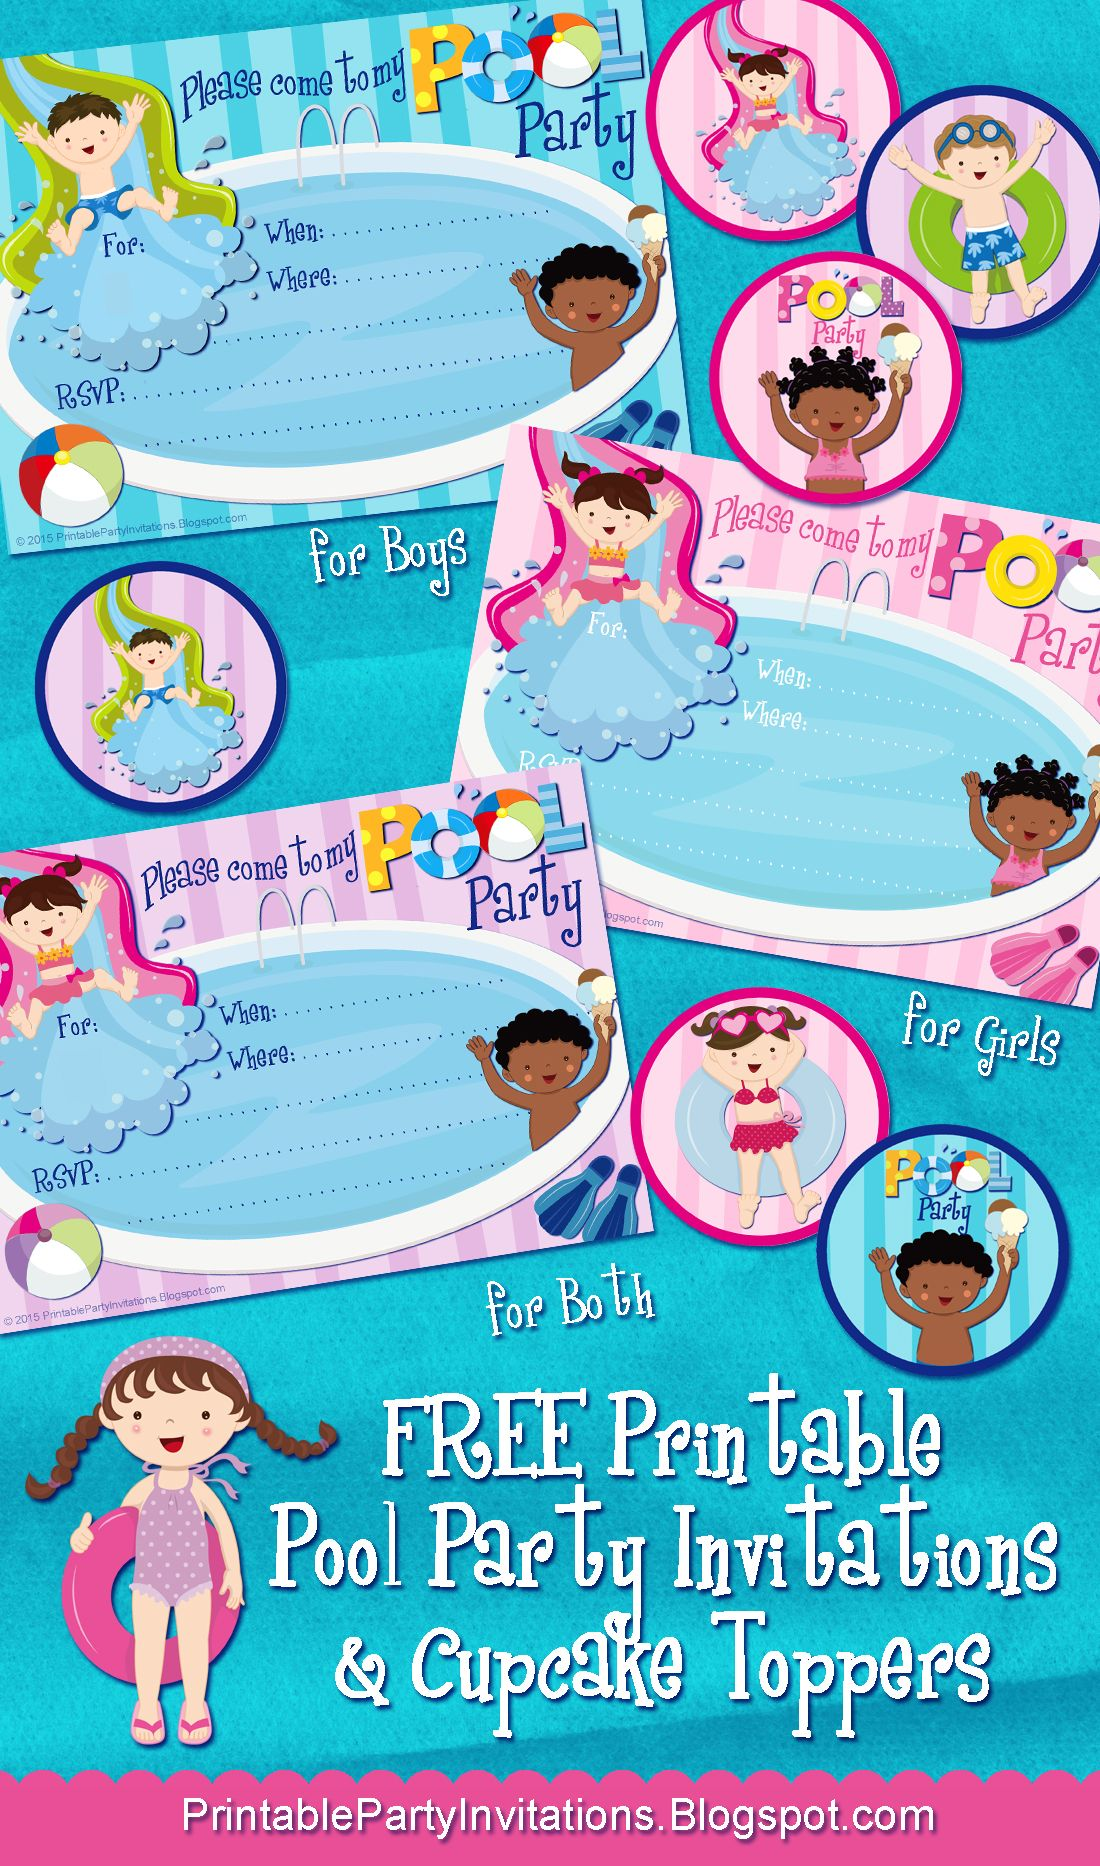 Three FREE Printable Pool Party Invitations, Plus Cupcake Toppers ...